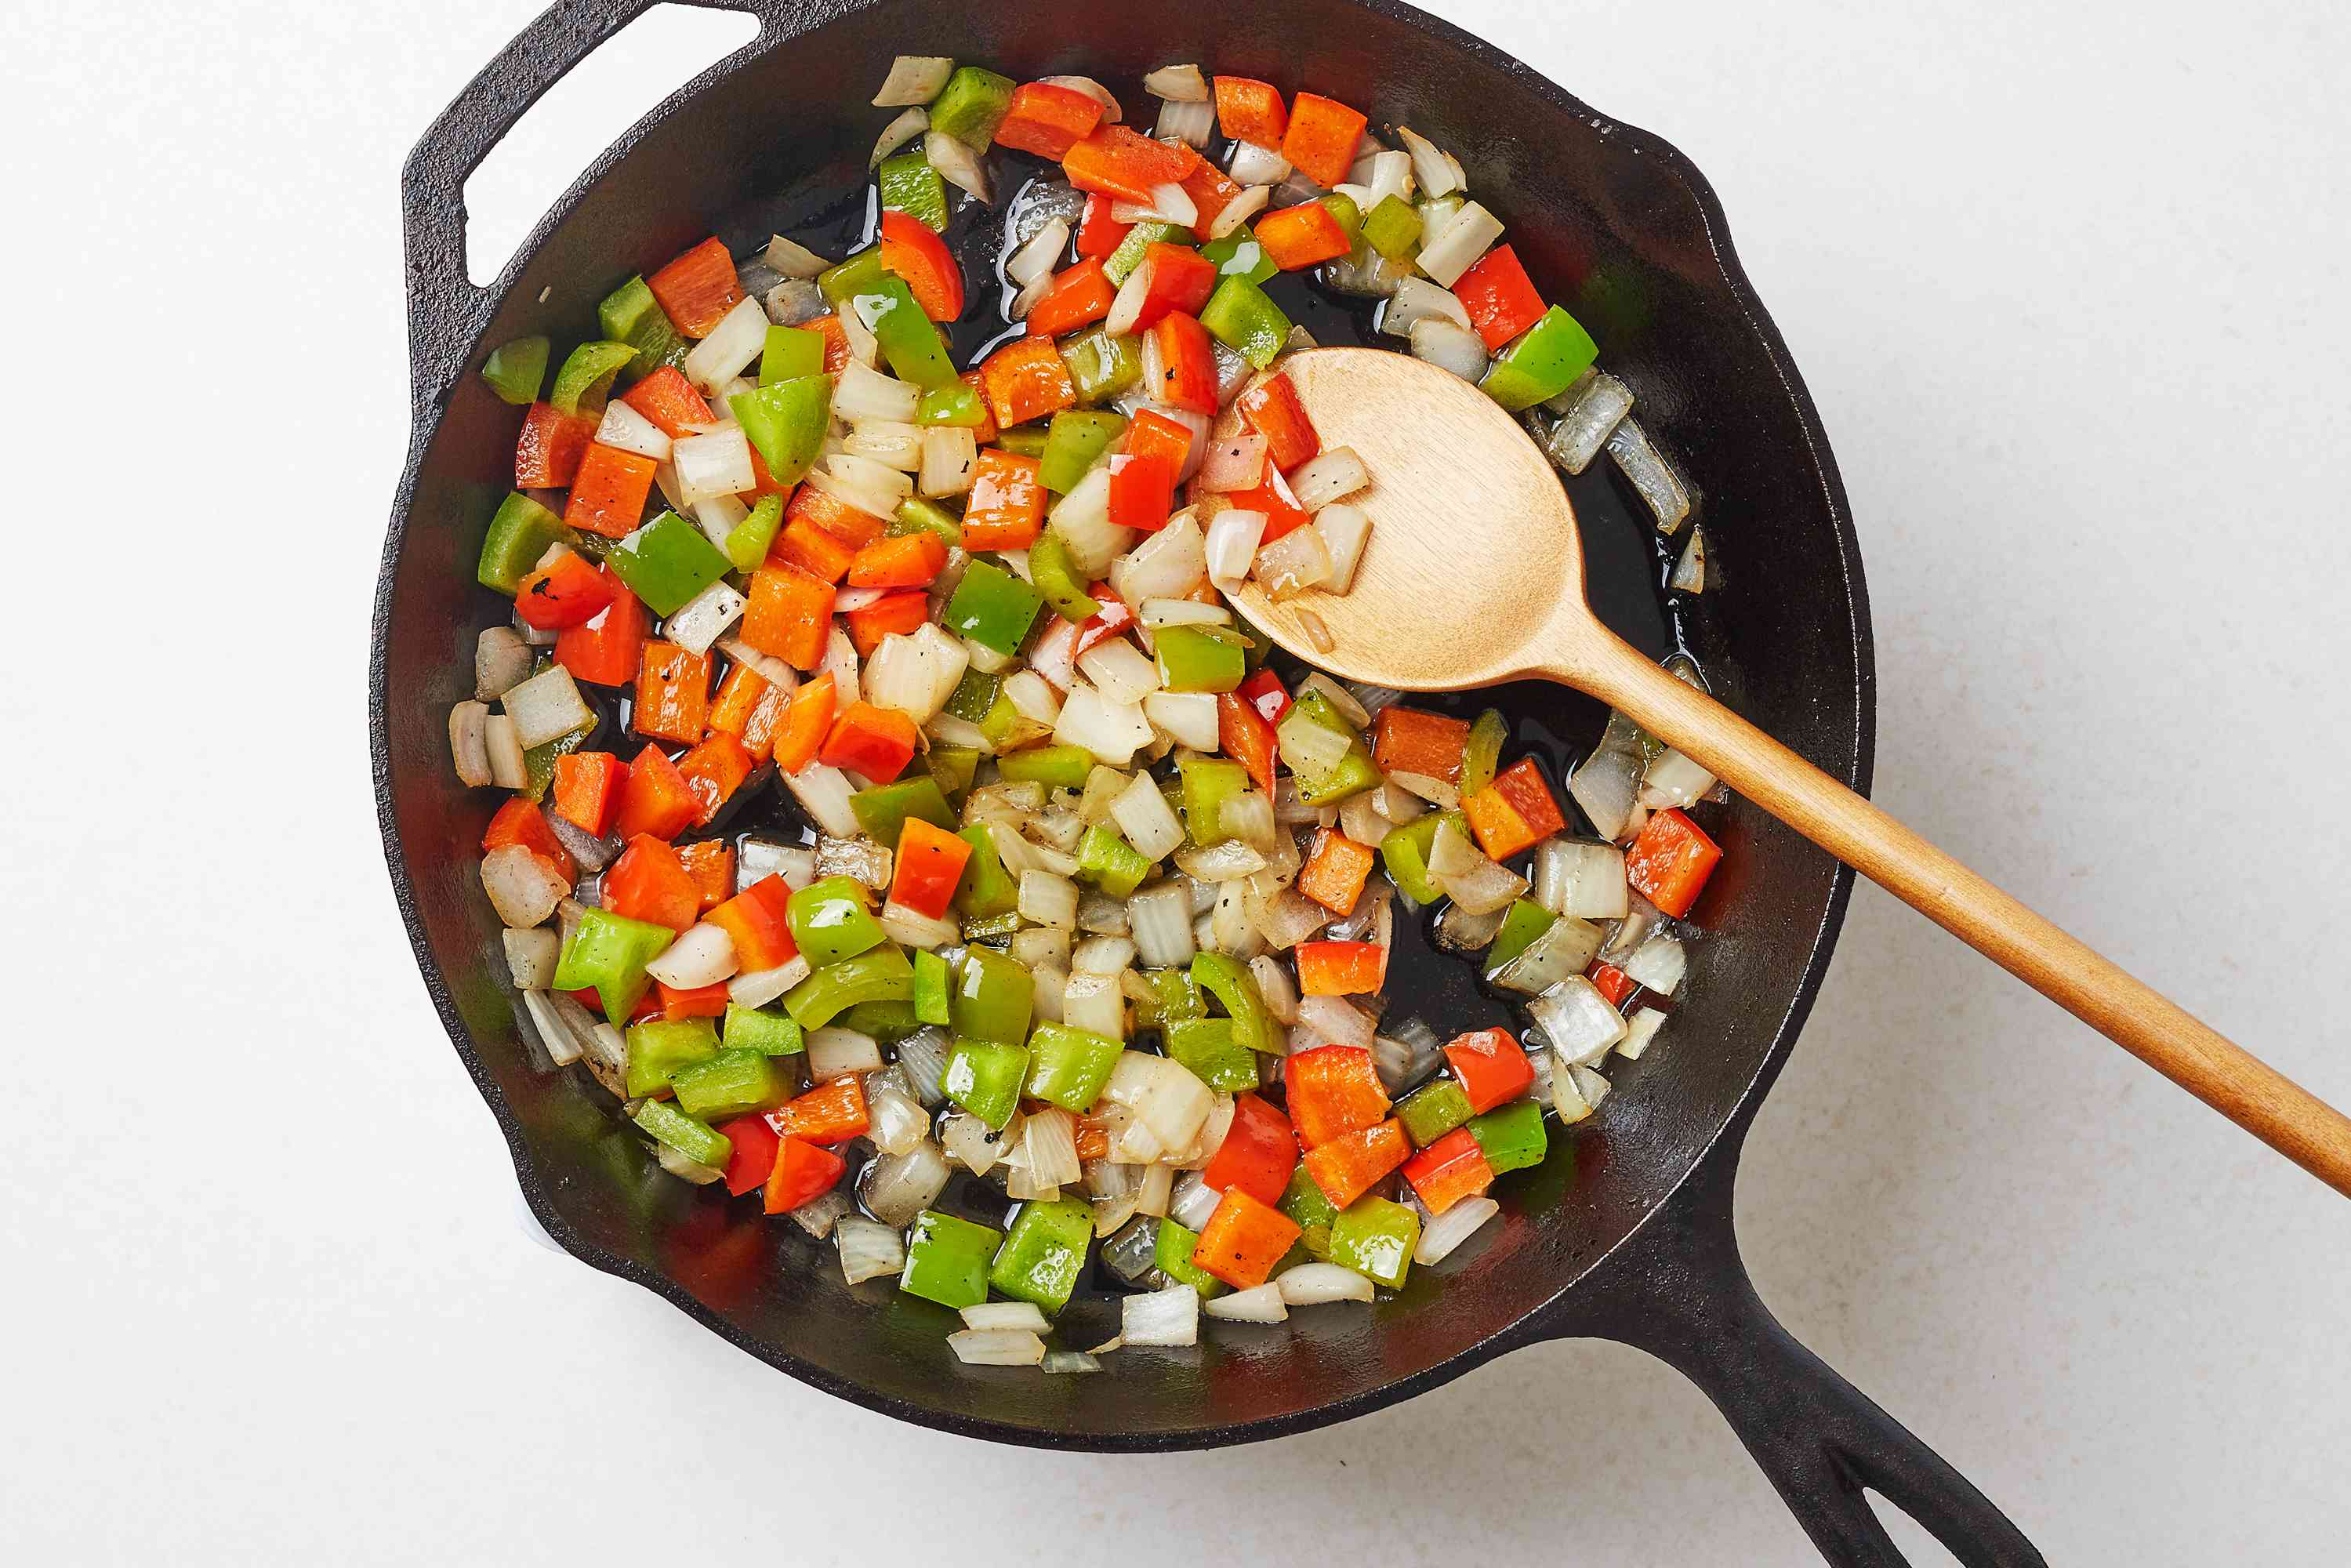 chopped onion and peppers in a pan